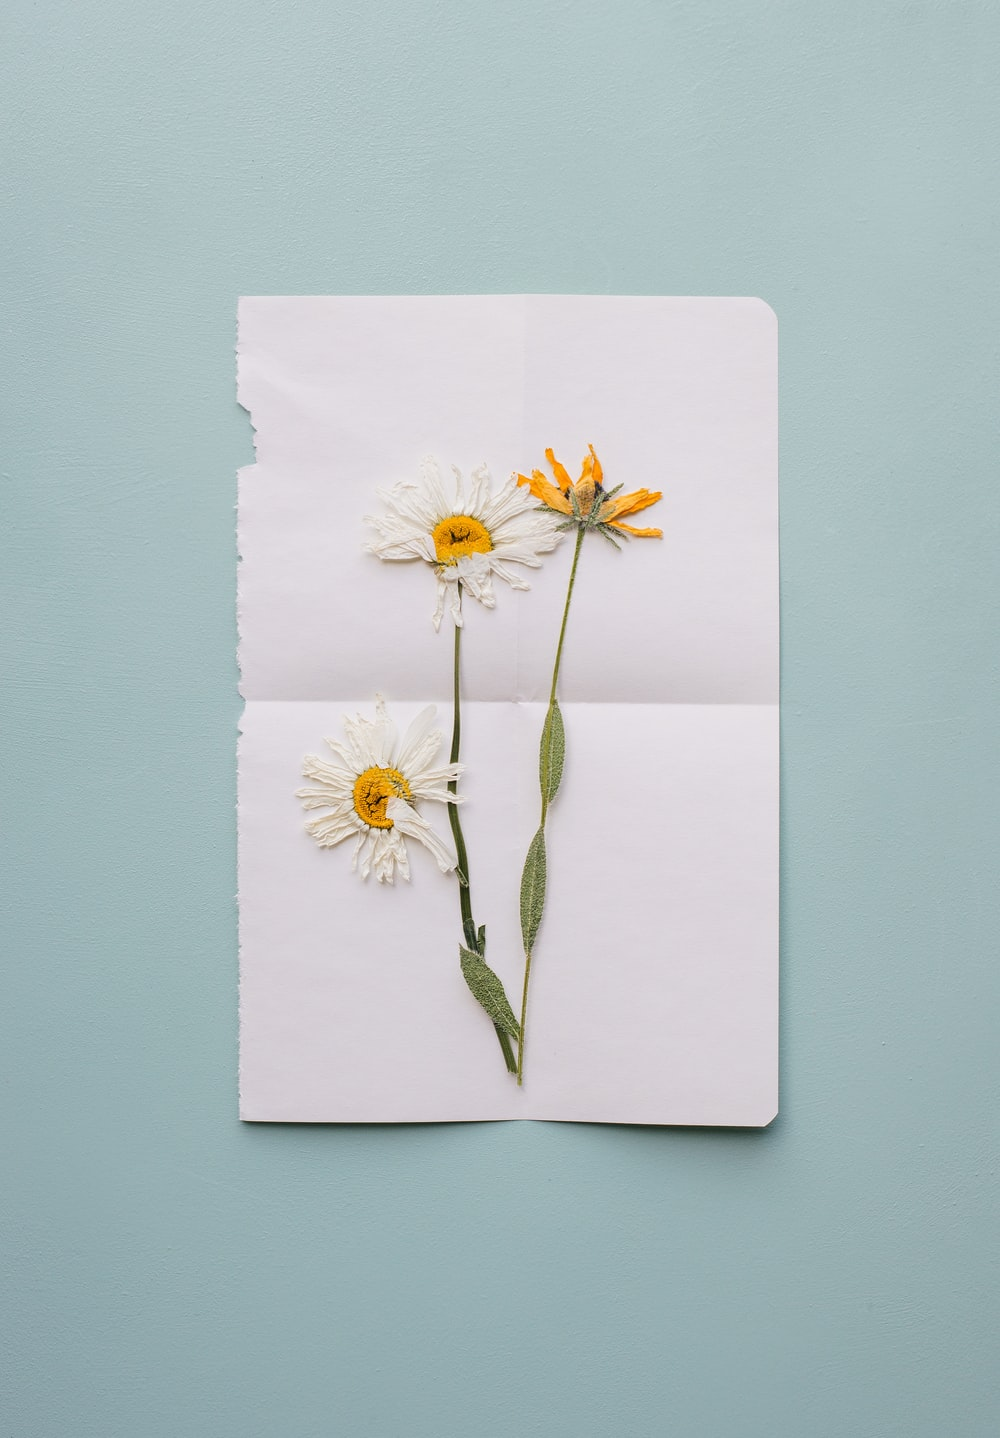 500 Greeting Card Pictures HD